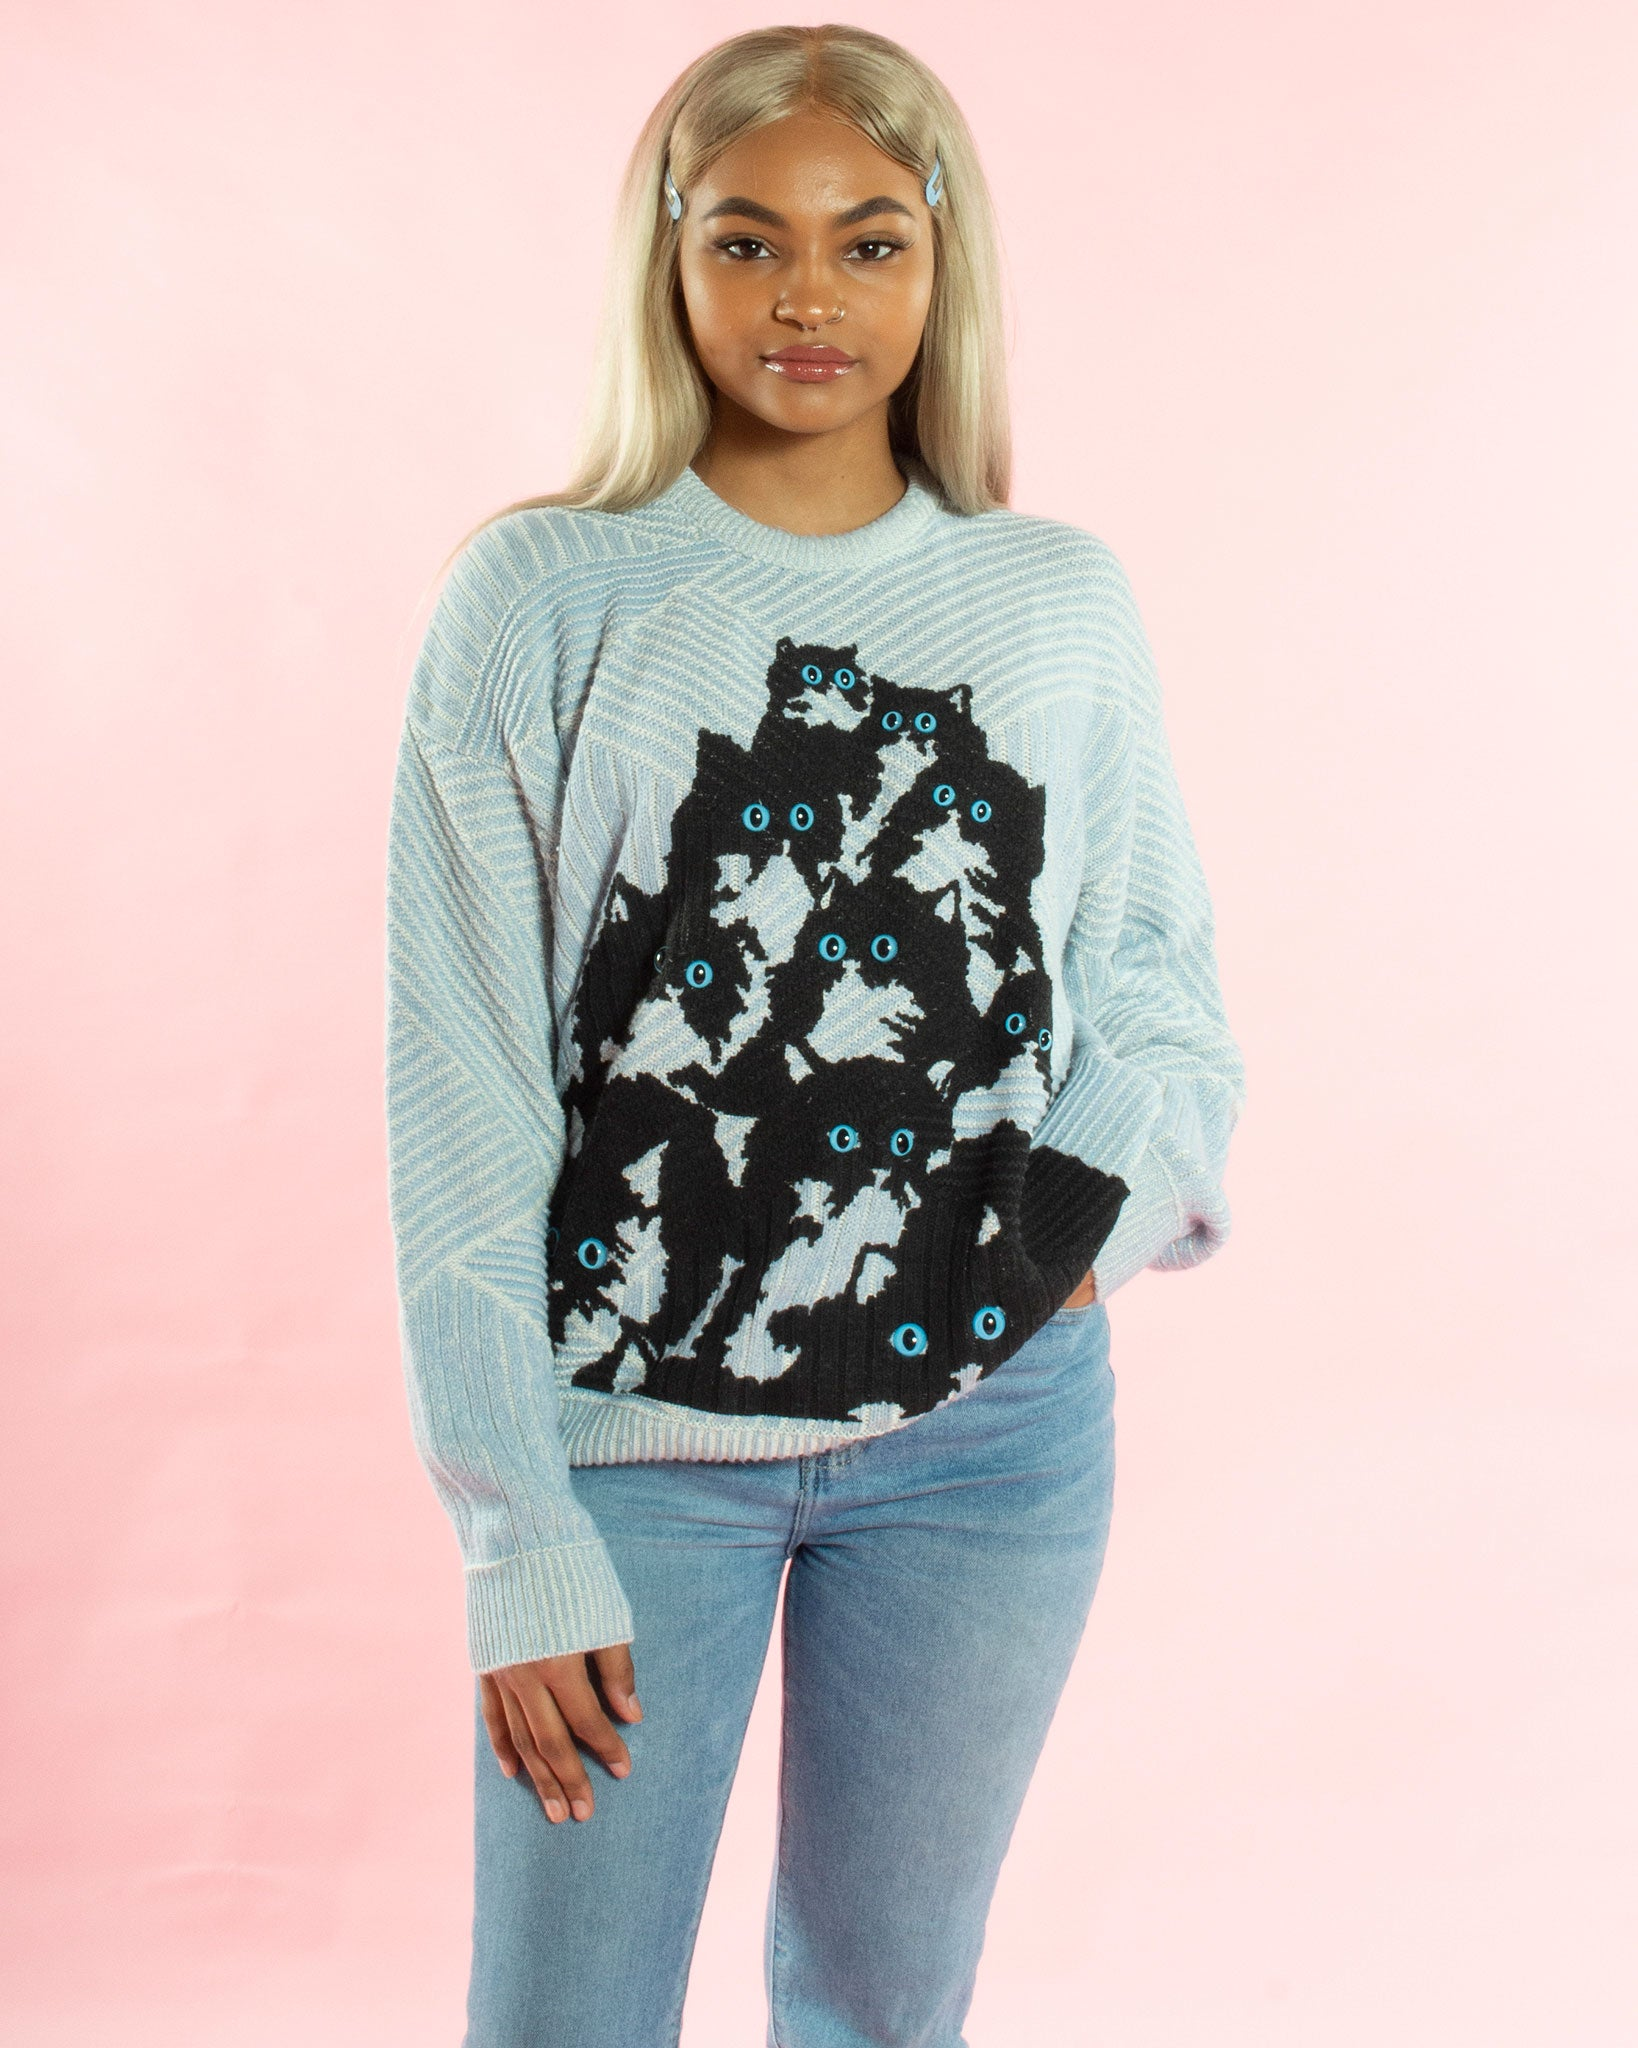 d6fa0c0d63ab54 Blue and White Kitty Sweater